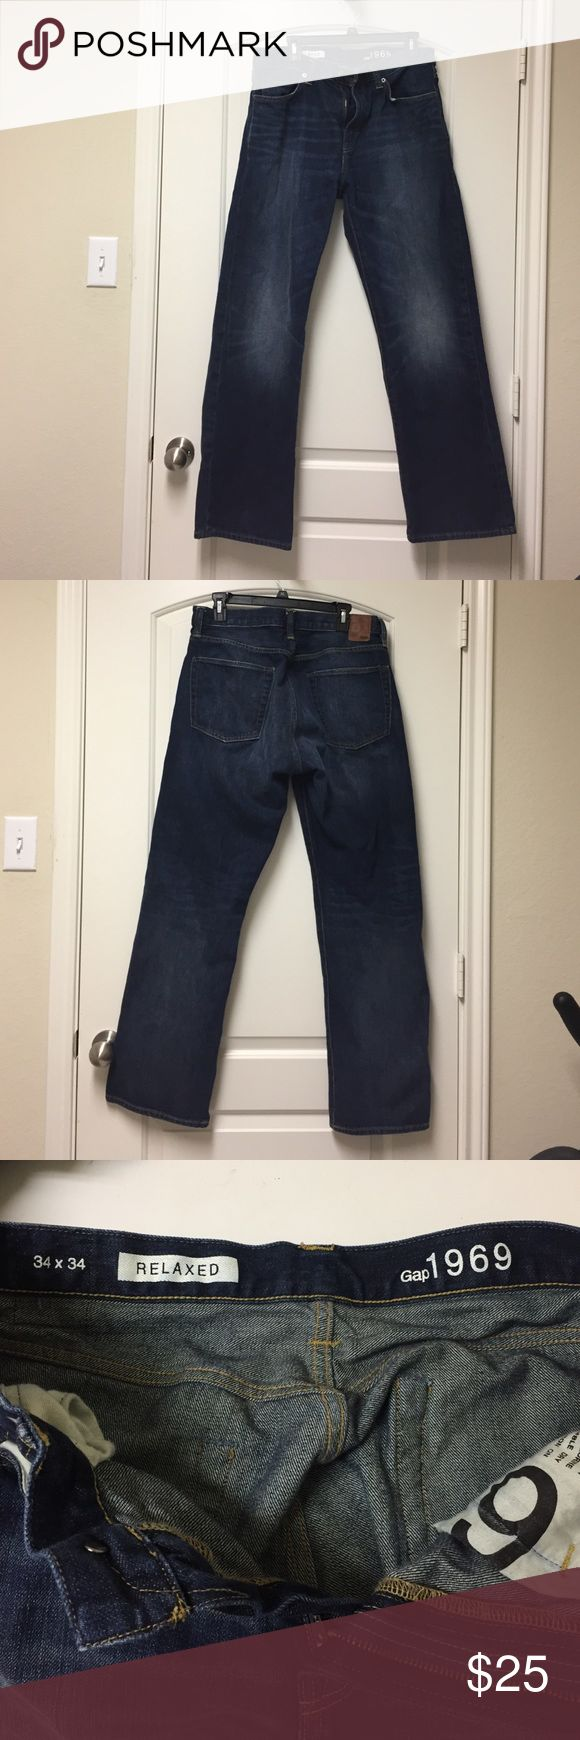 Like new Gap 1969 Men's relaxed fit jeans Men's Gap 1969 relaxed jeans dark wash. Hardly worn, size 34/34 GAP Jeans Relaxed